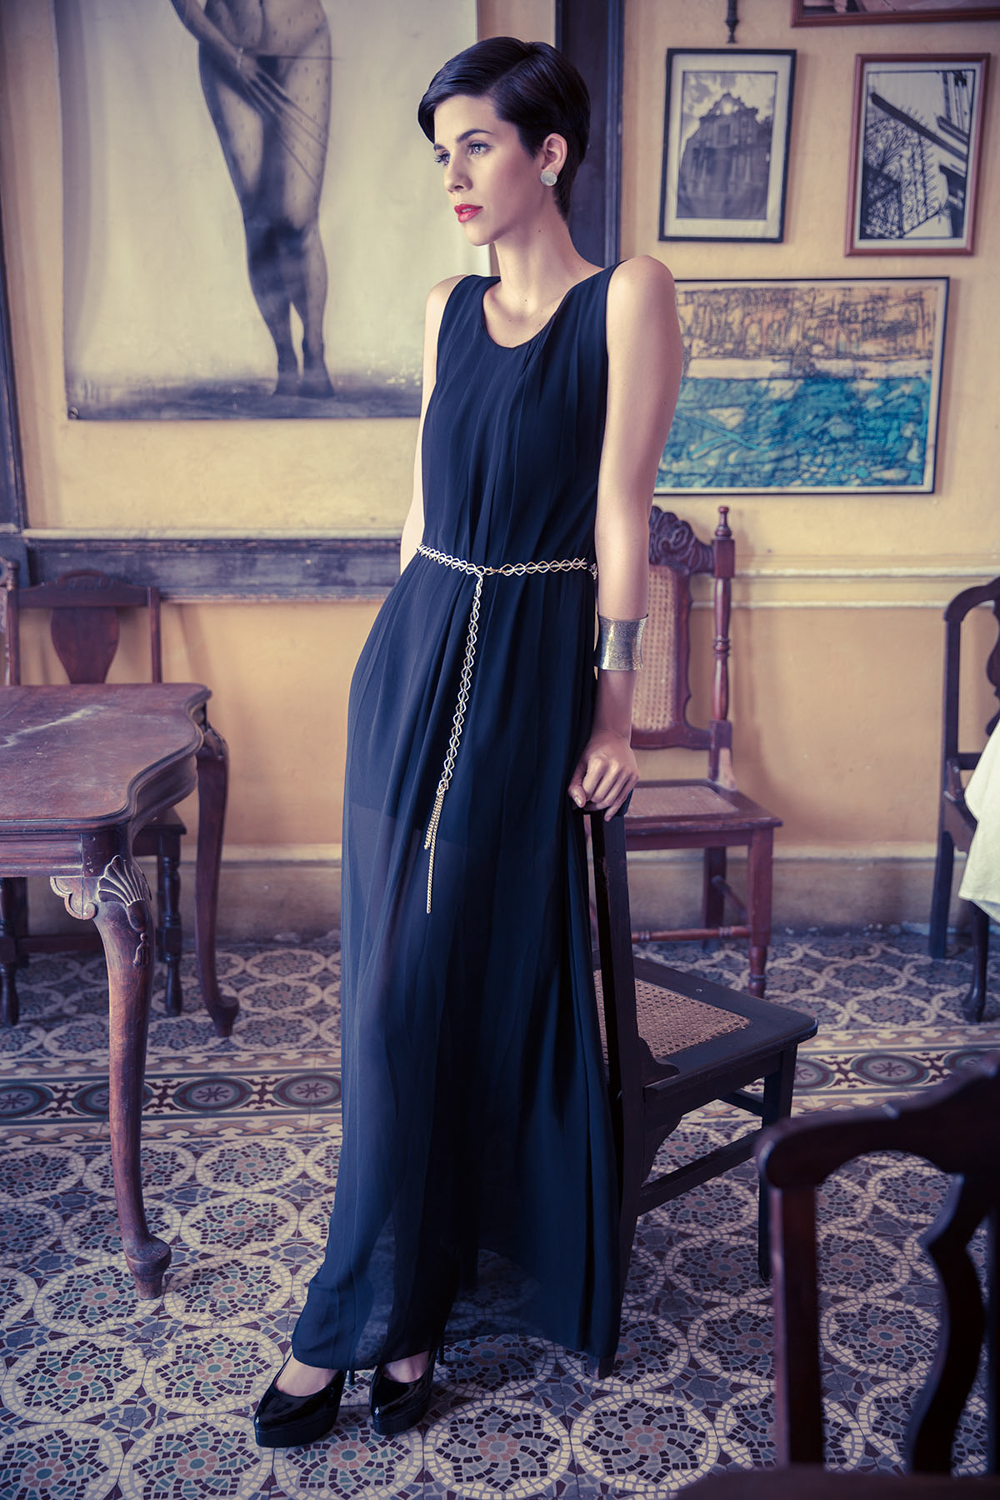 Havana_Fashion-1434_Darker.jpg